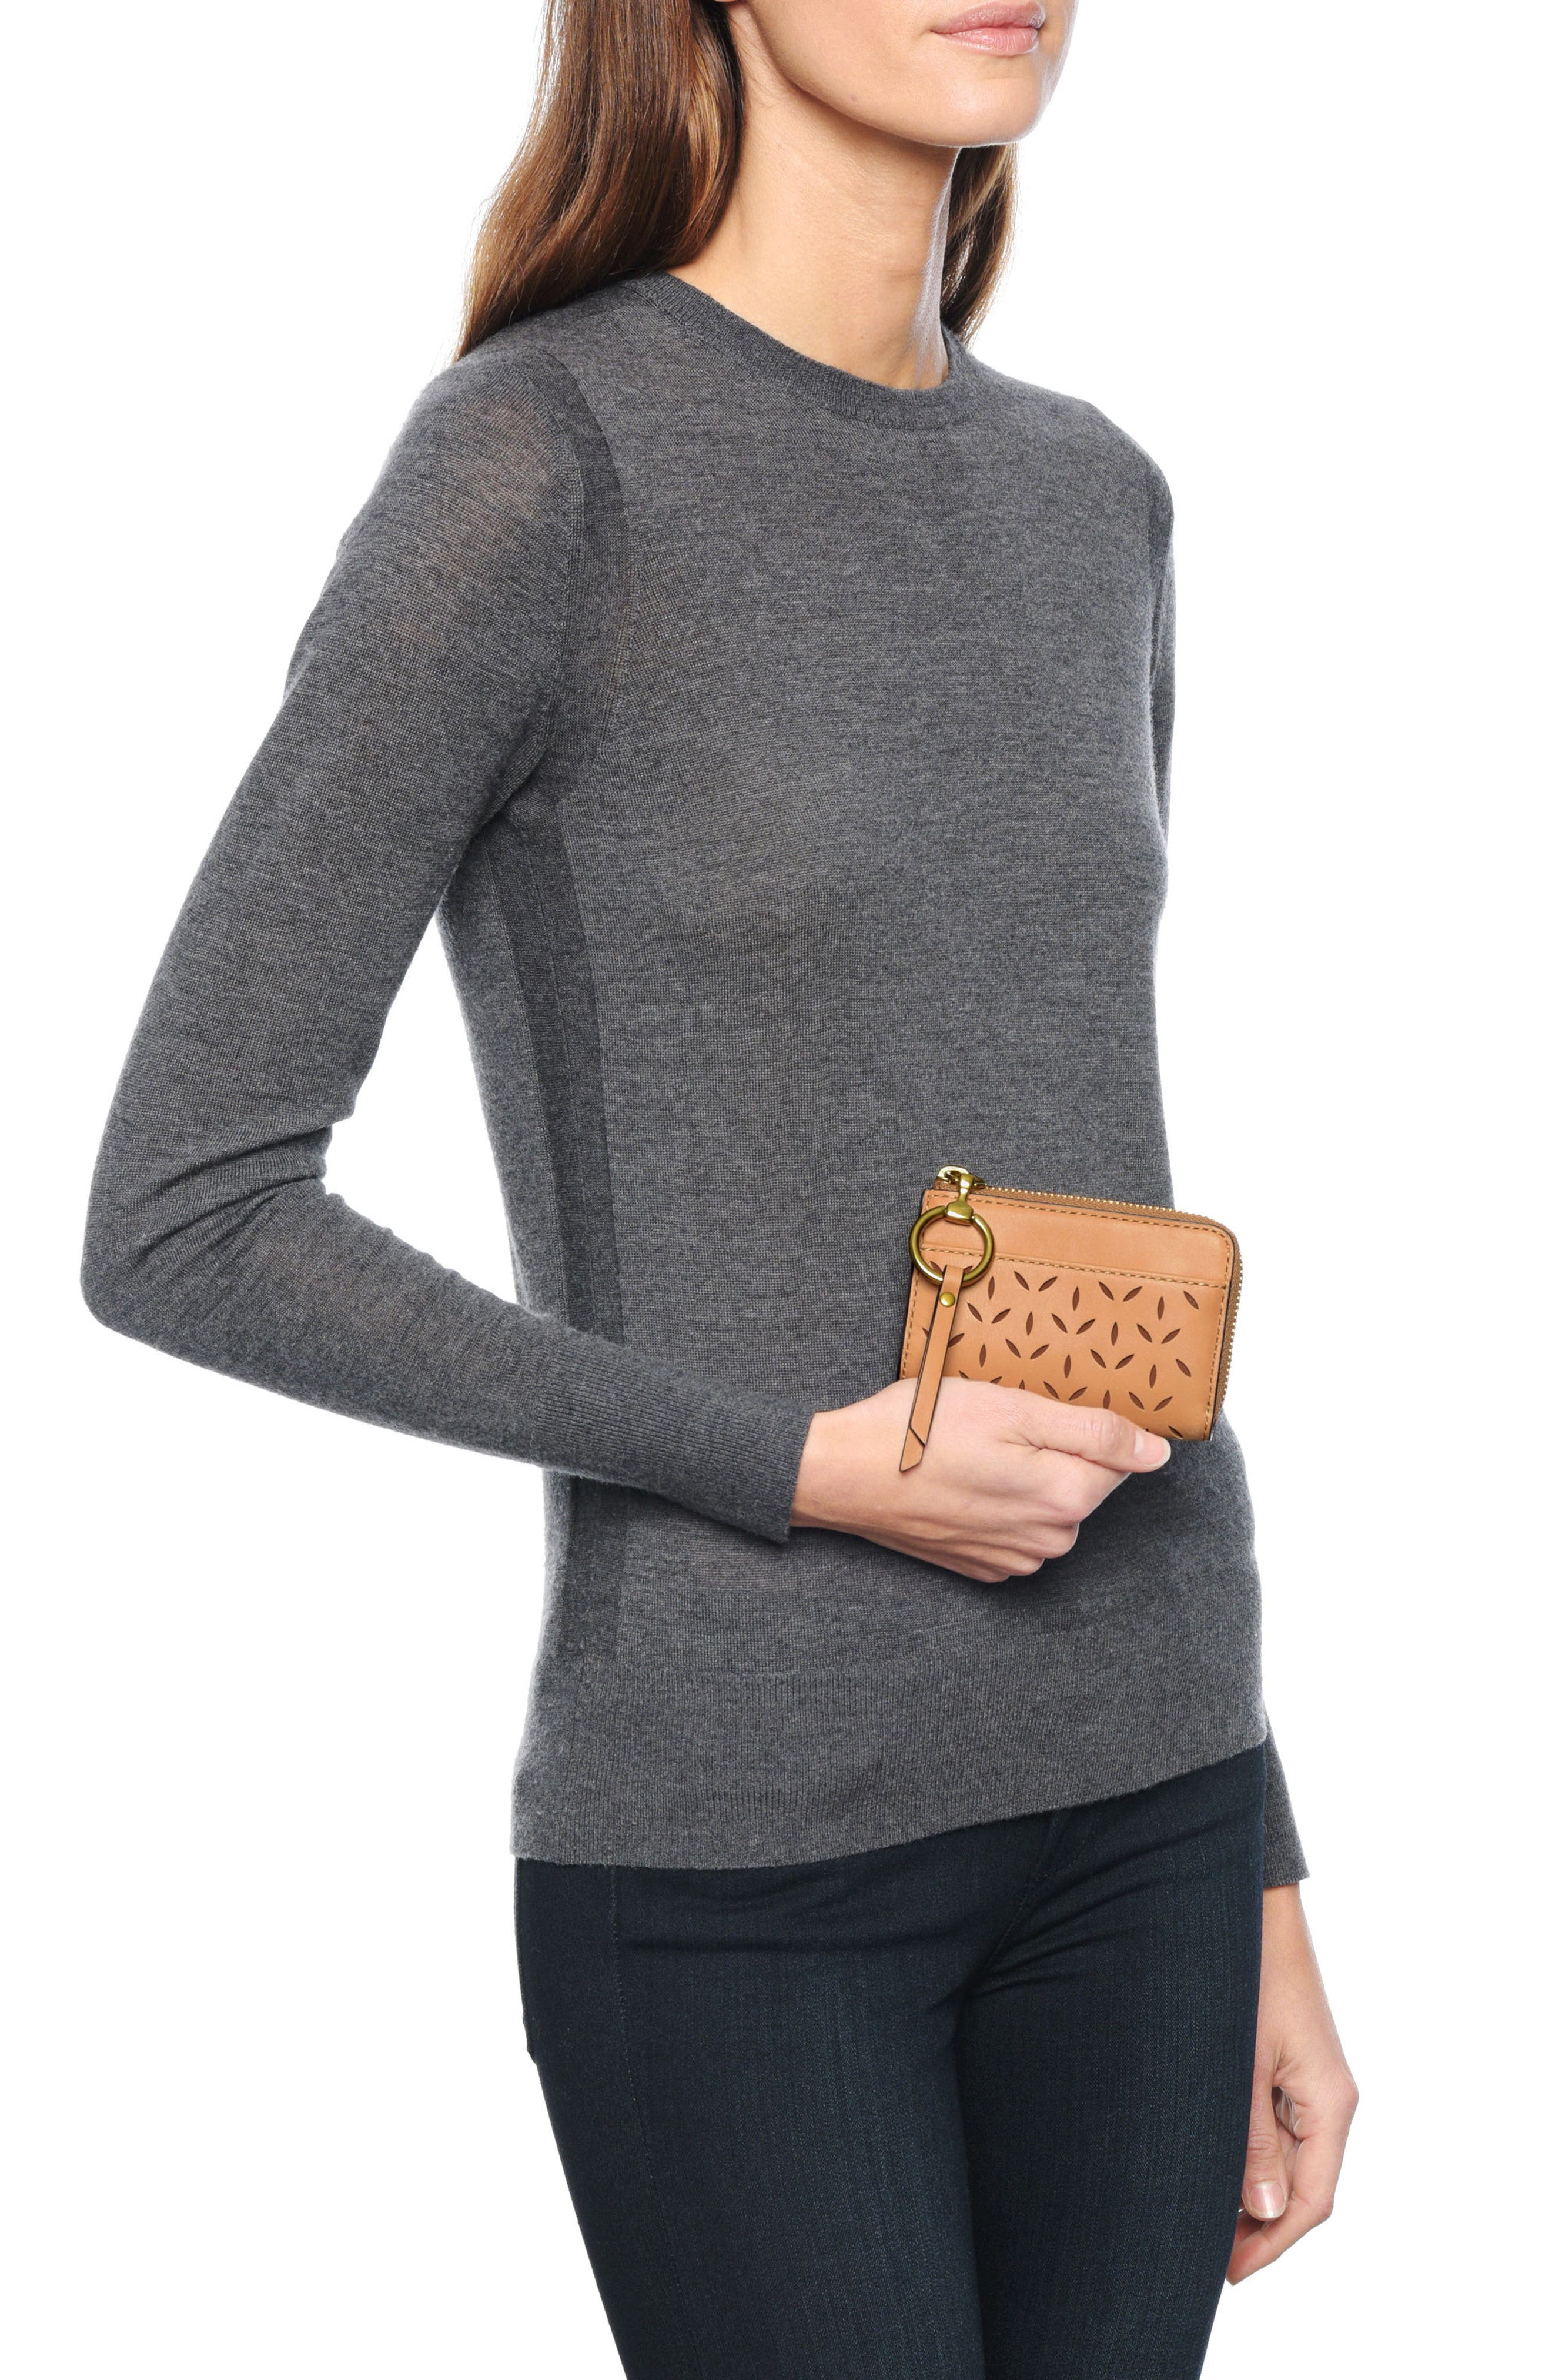 Ilana Small Perforated Leather Zip Wallet,                             Alternate thumbnail 3, color,                             Light Tan